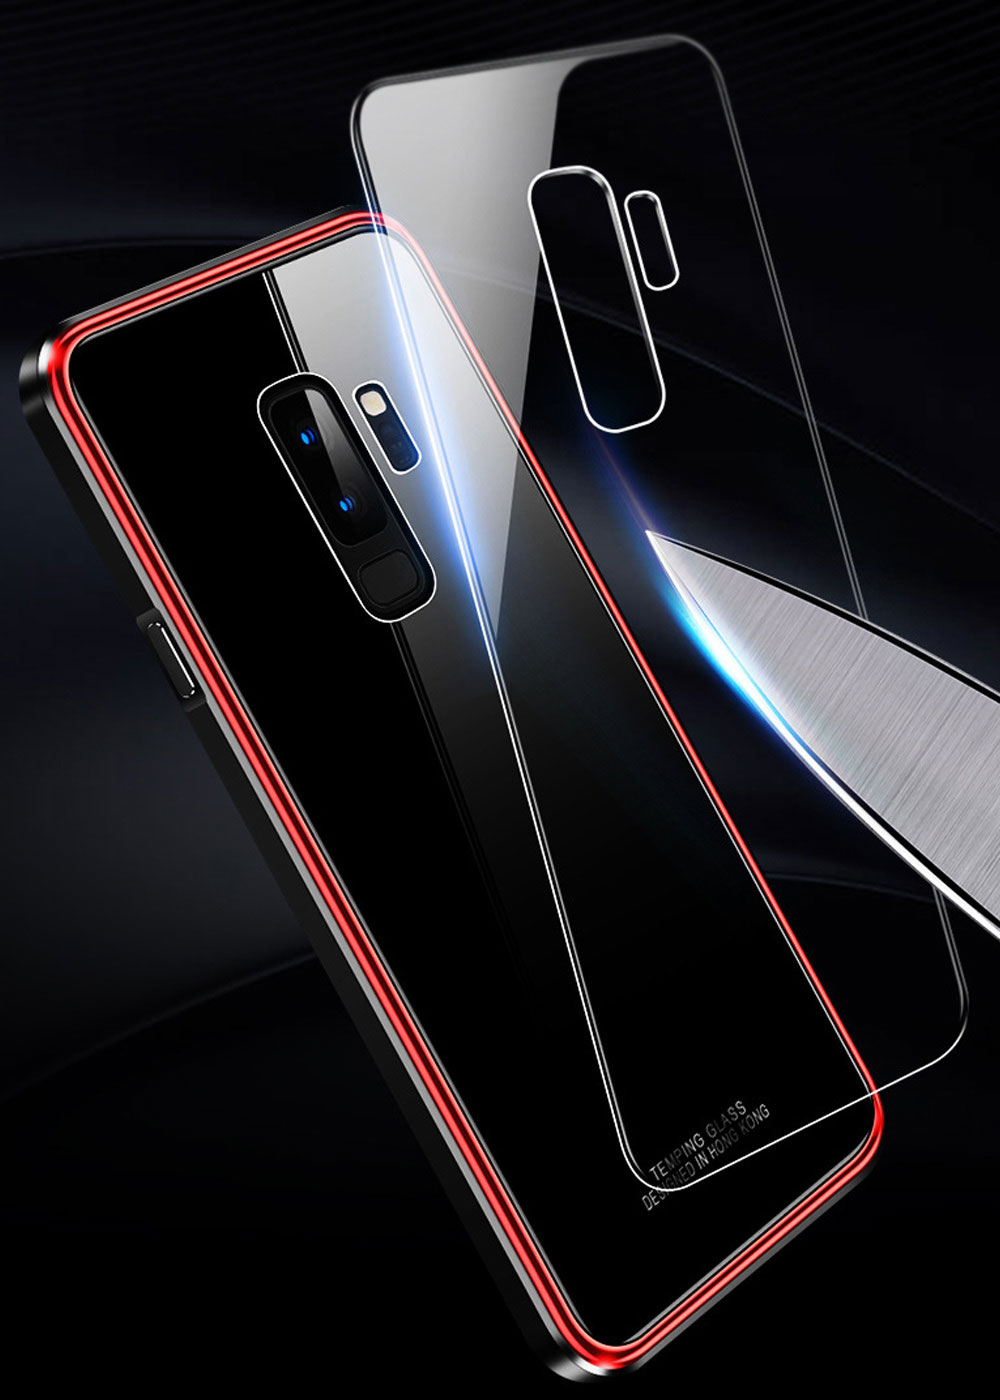 Minimalist Solid Metal Border Tempered Glass Samsung Phone Case, Breaking-proof Phone Protective Cover for Samsung Galaxy Note 9 S9 Plus 2